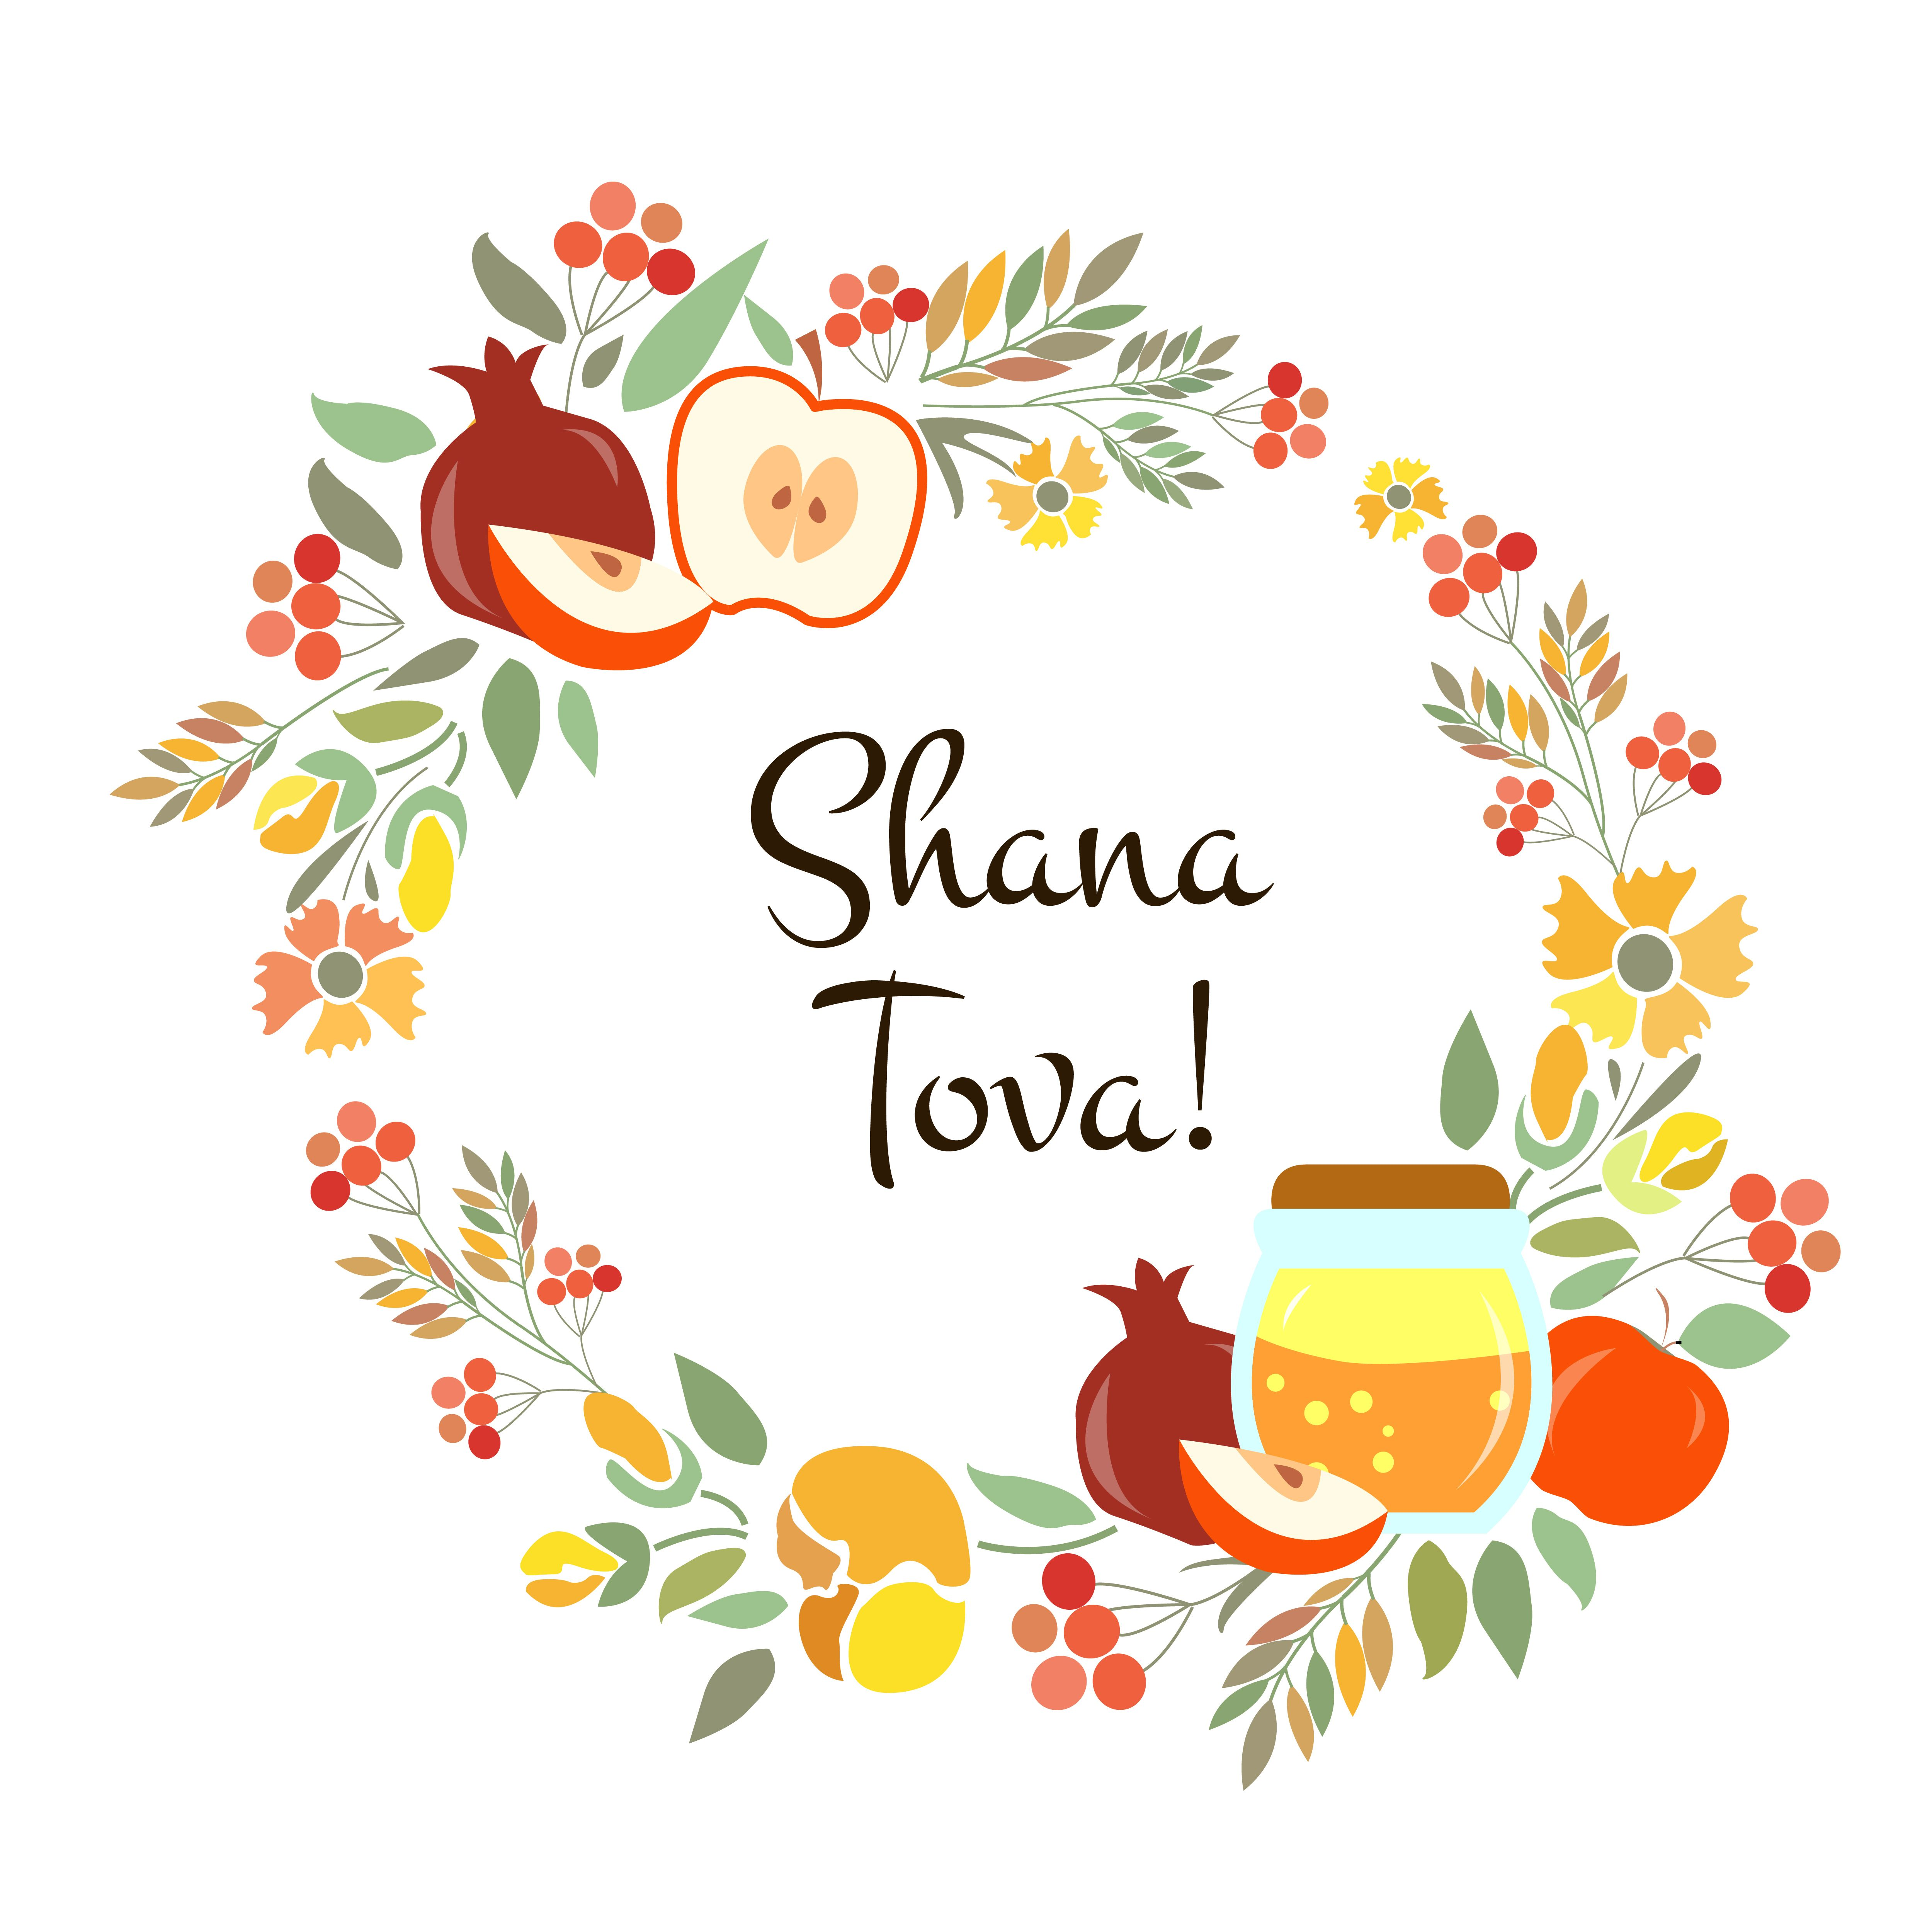 Shana Tova Card Template By Alps View Art On Creative Market